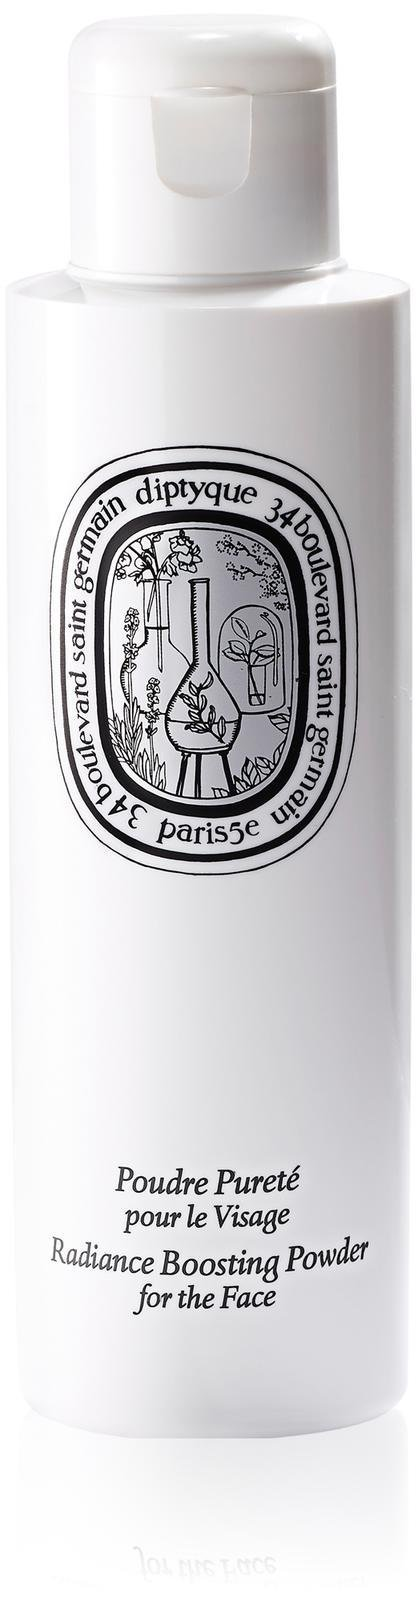 Diptyque Radiance Boosting Powder - 1.4 oz